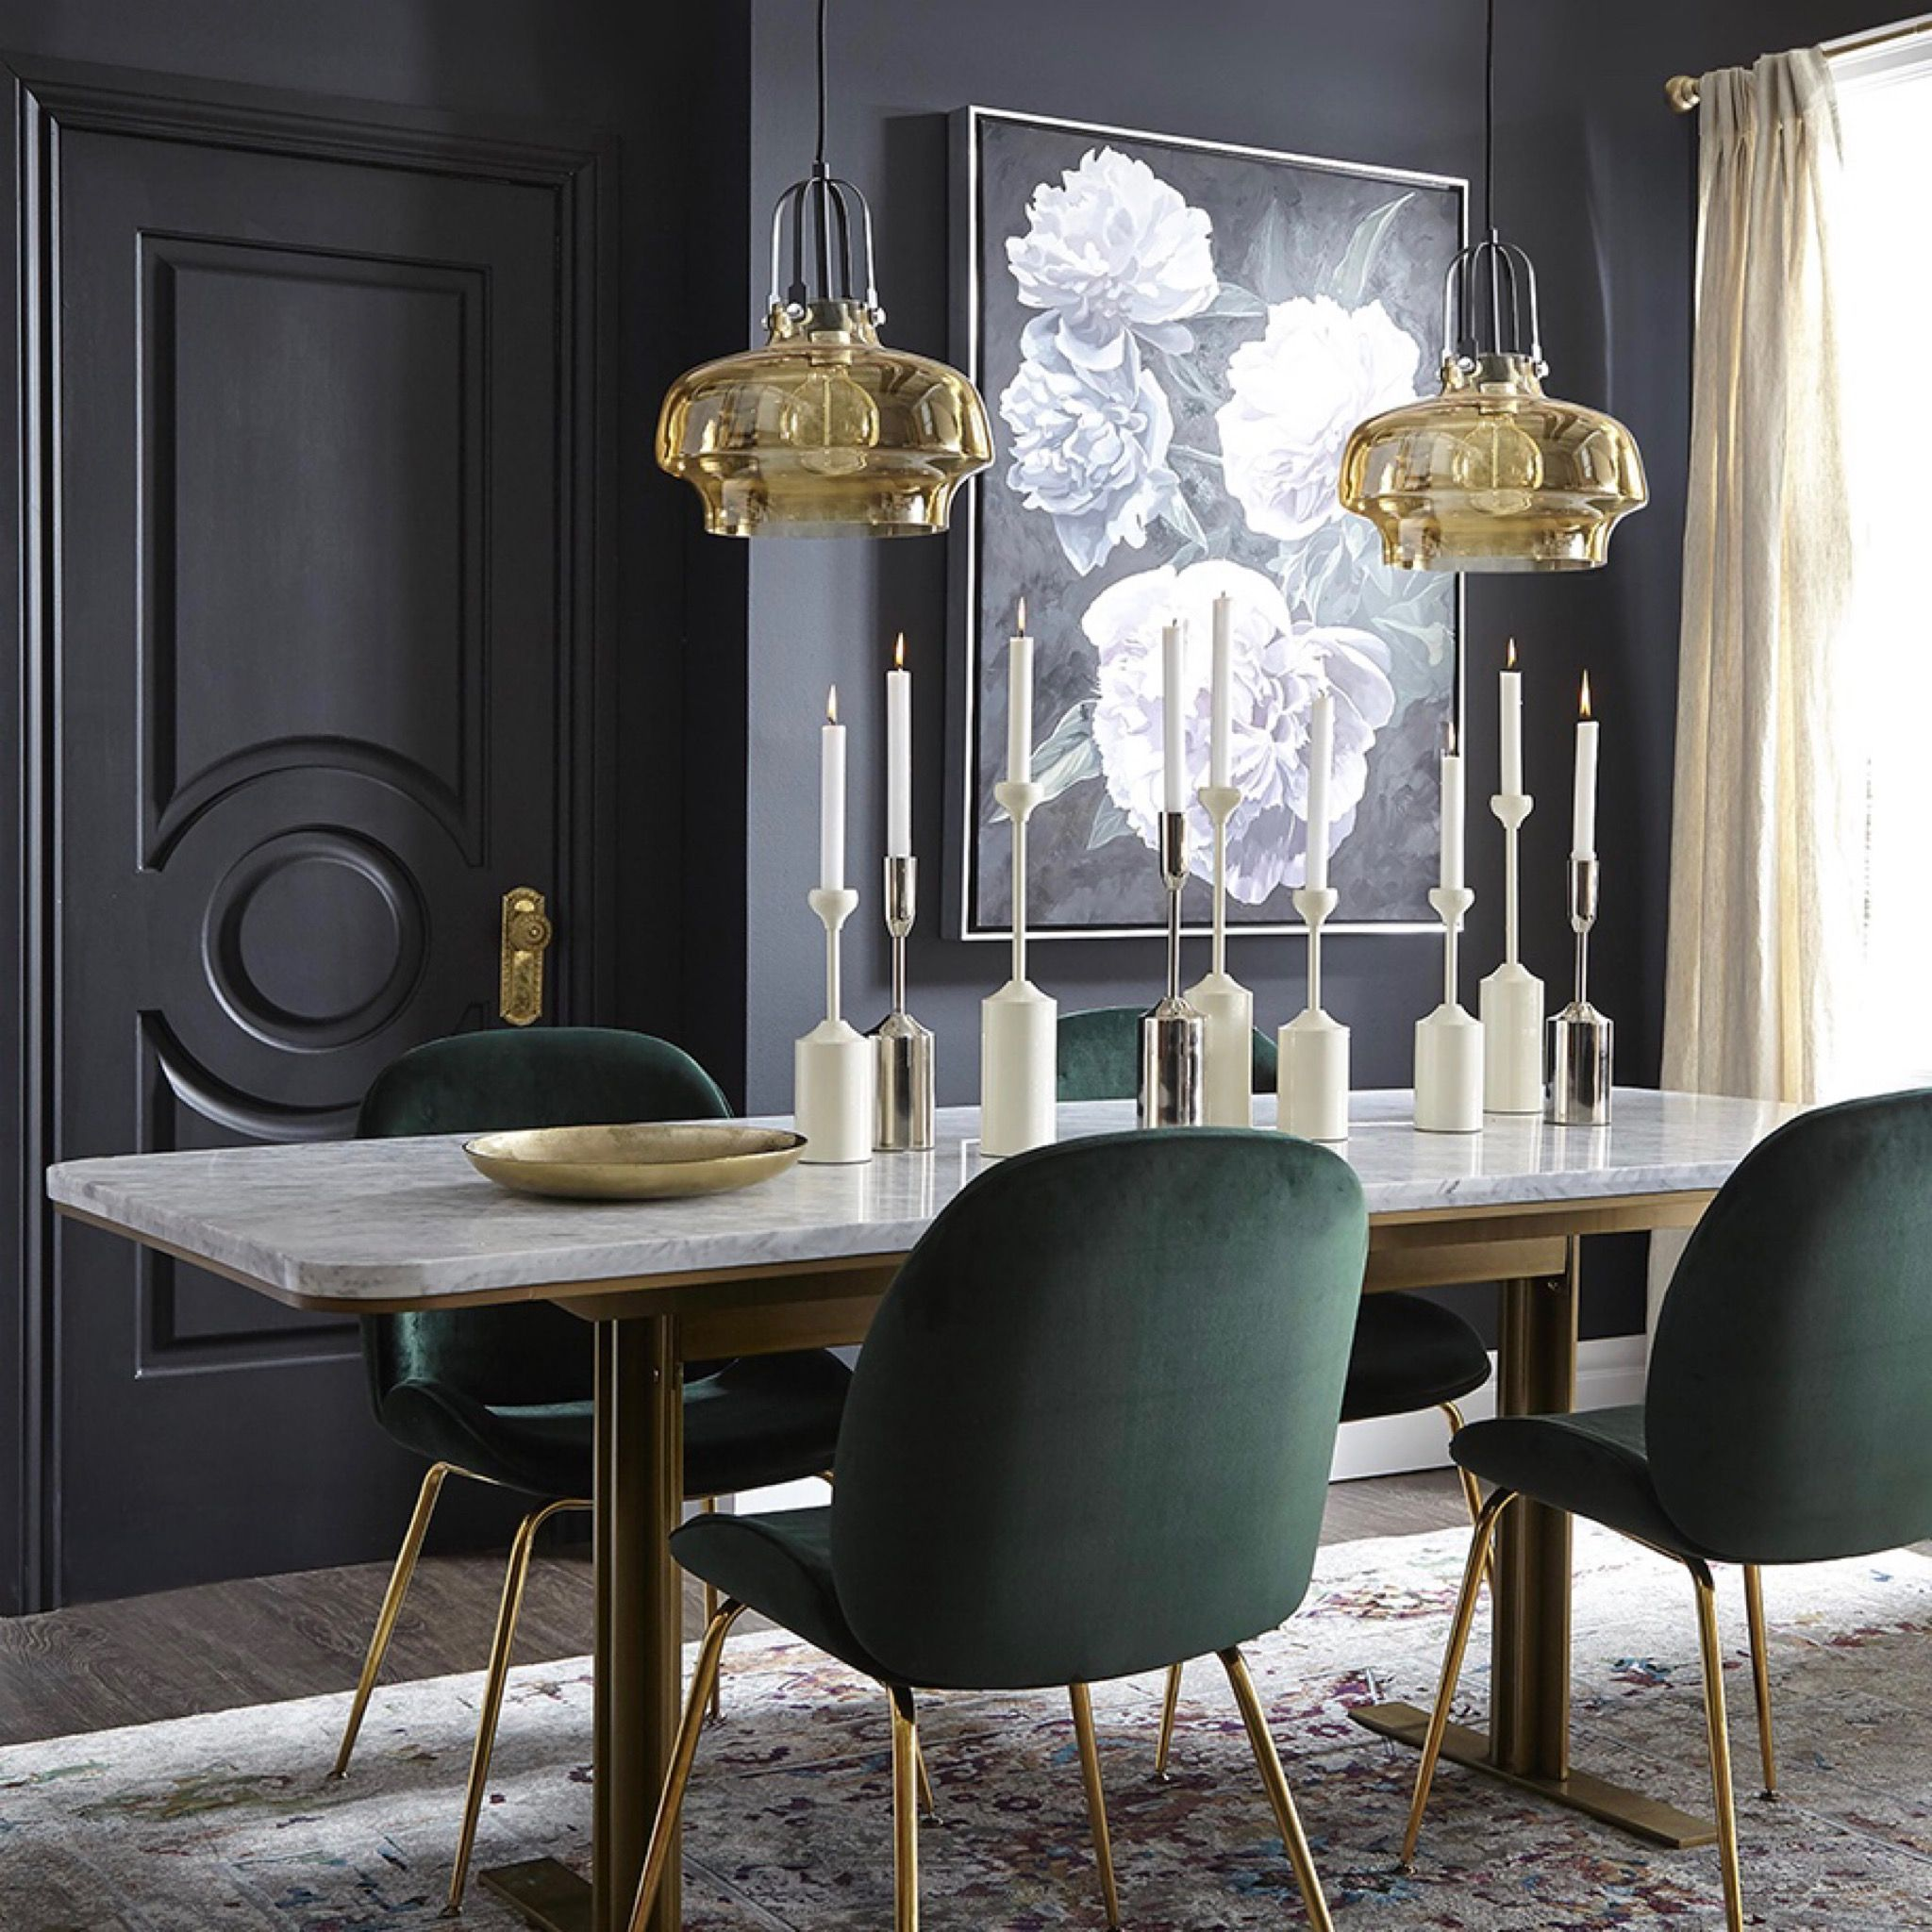 Green Velvet Dining Chairs Marble Table Dark Walls Dining Room Decor In 2020 Zuhause